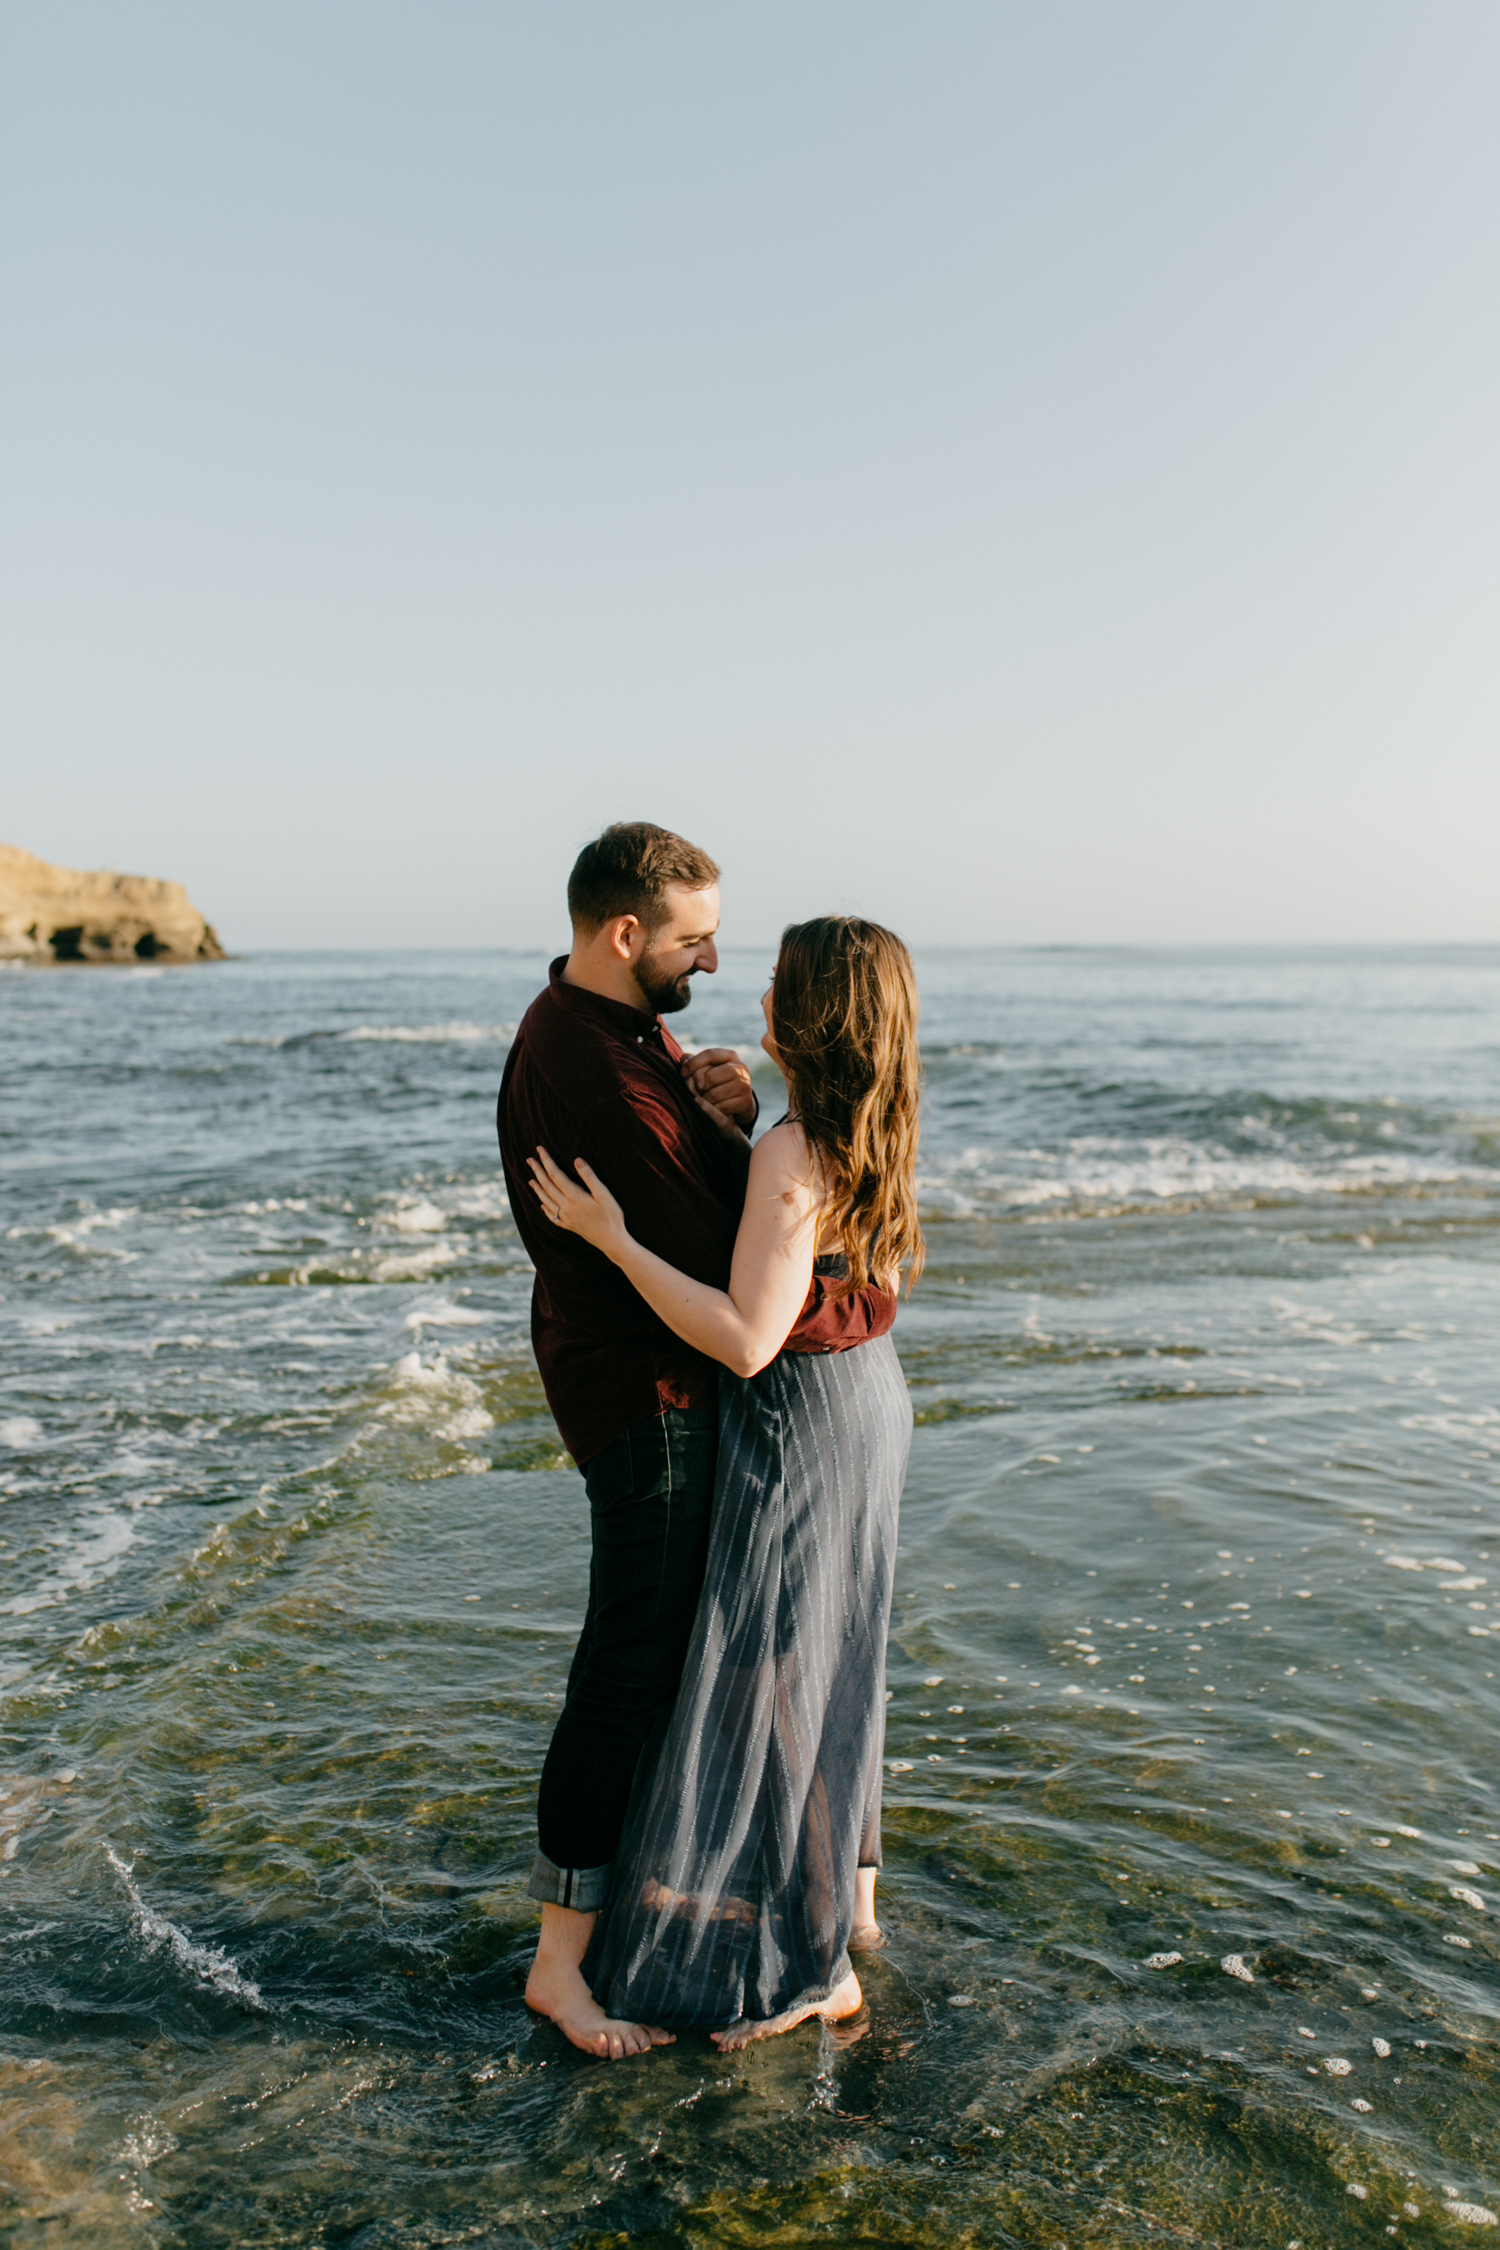 SamErica Studios - Nick and Emily Engagement-52.jpg